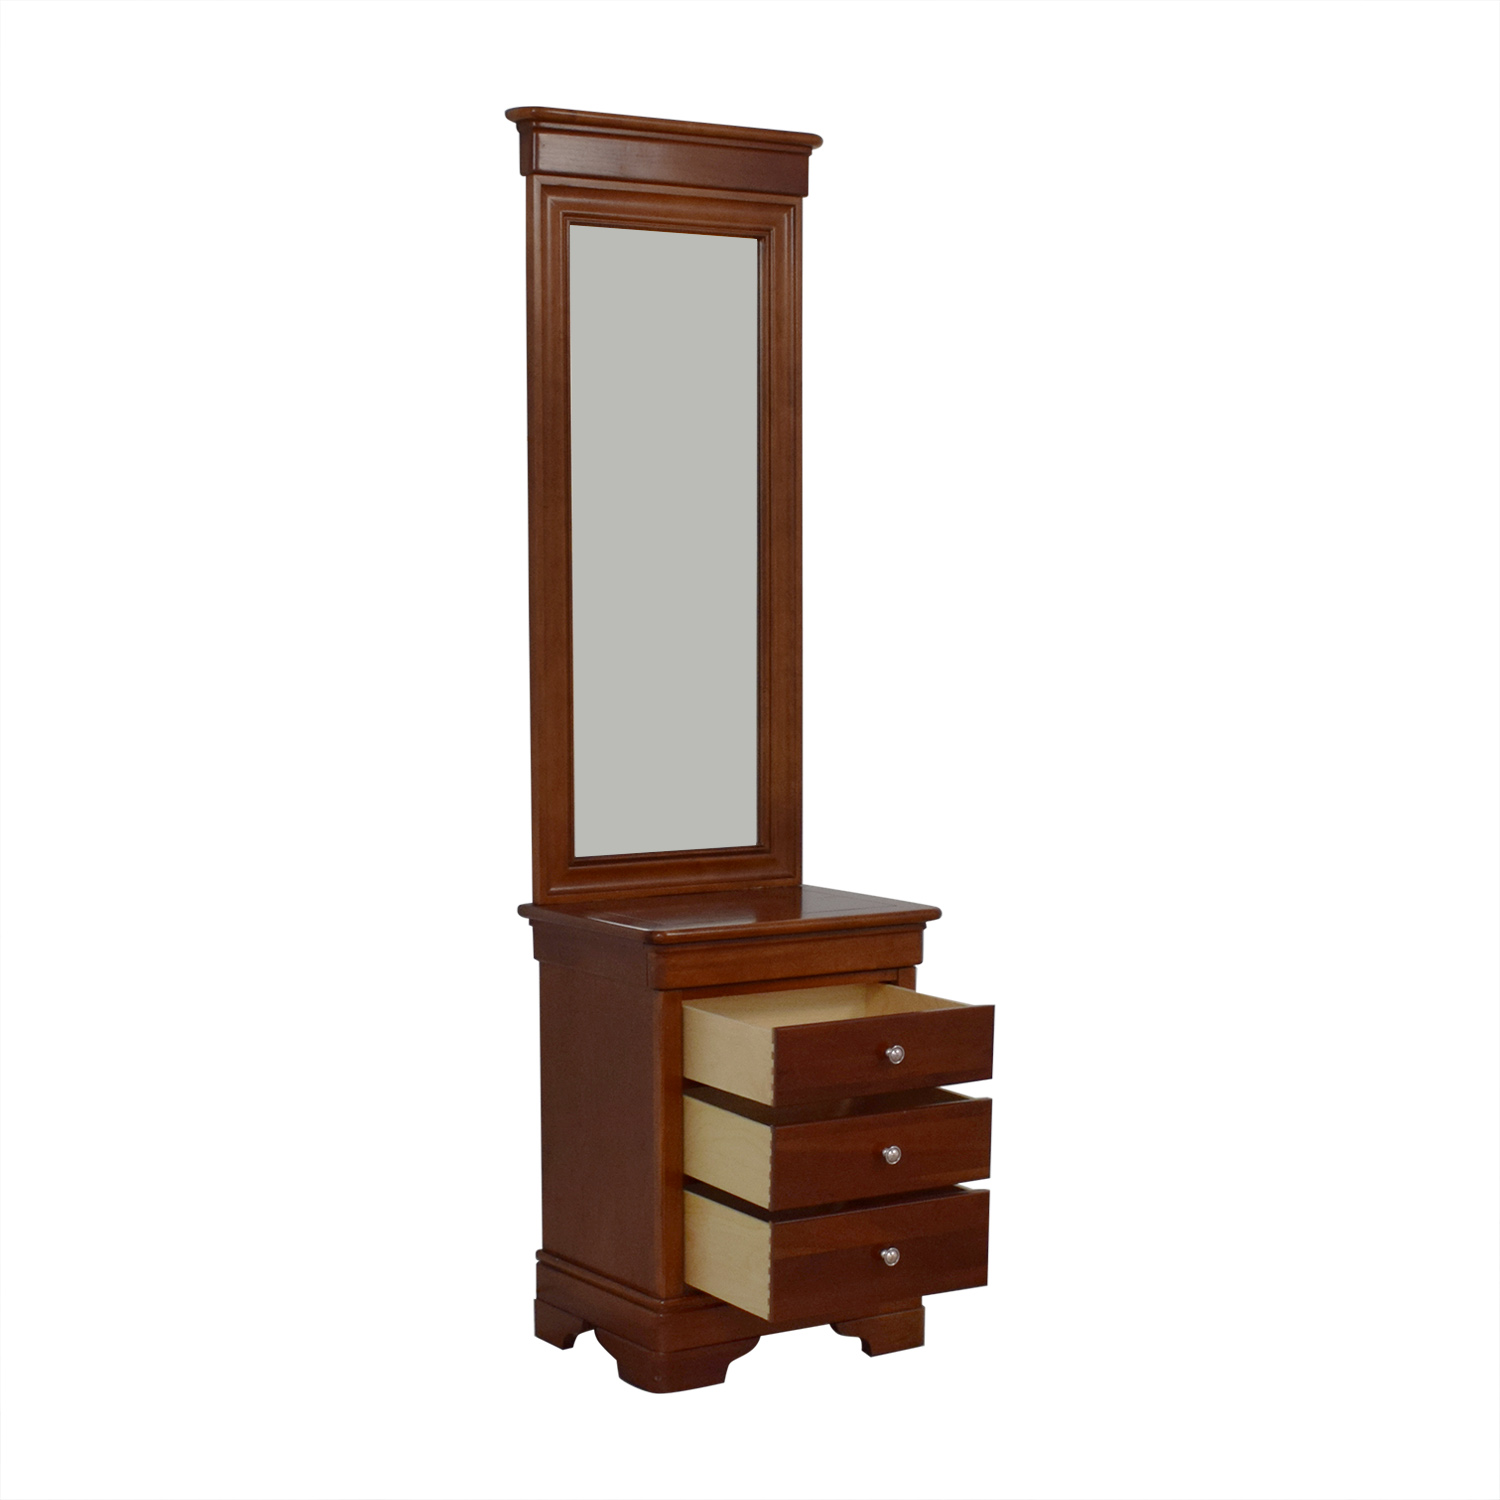 Stanley Furniture Stanley Furniture Nightstand with Mirror used